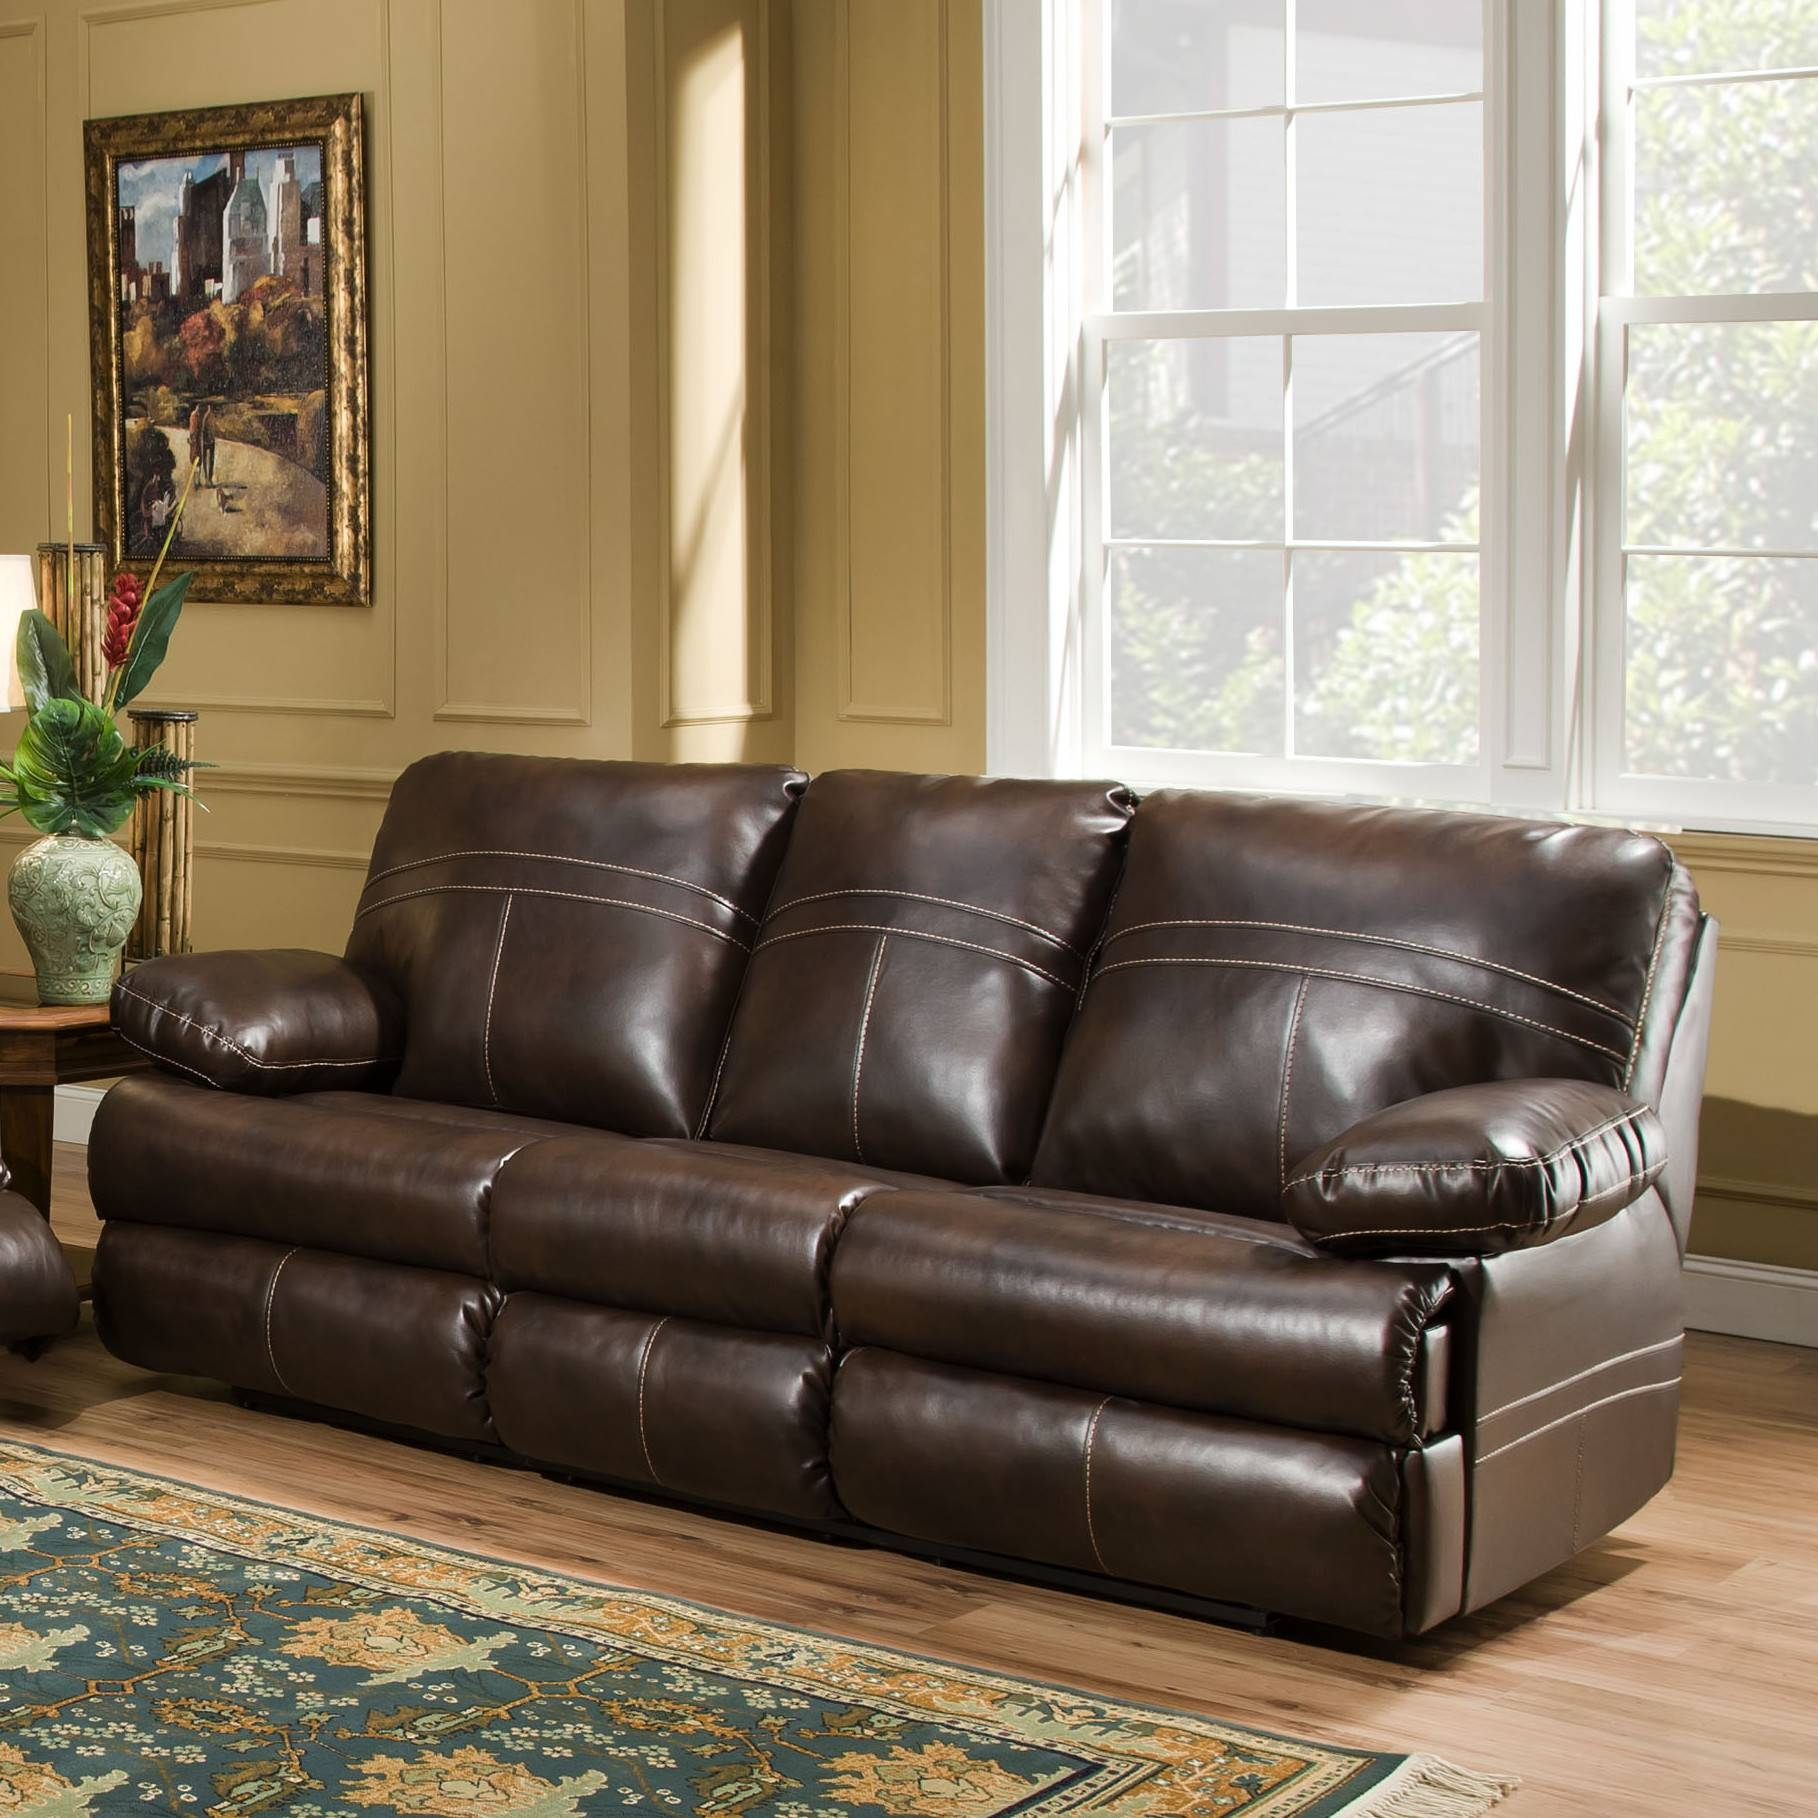 Furniture: Simmons Couch | Cheap Leather Couches | Big Lots within Simmons Sofas (Image 4 of 15)